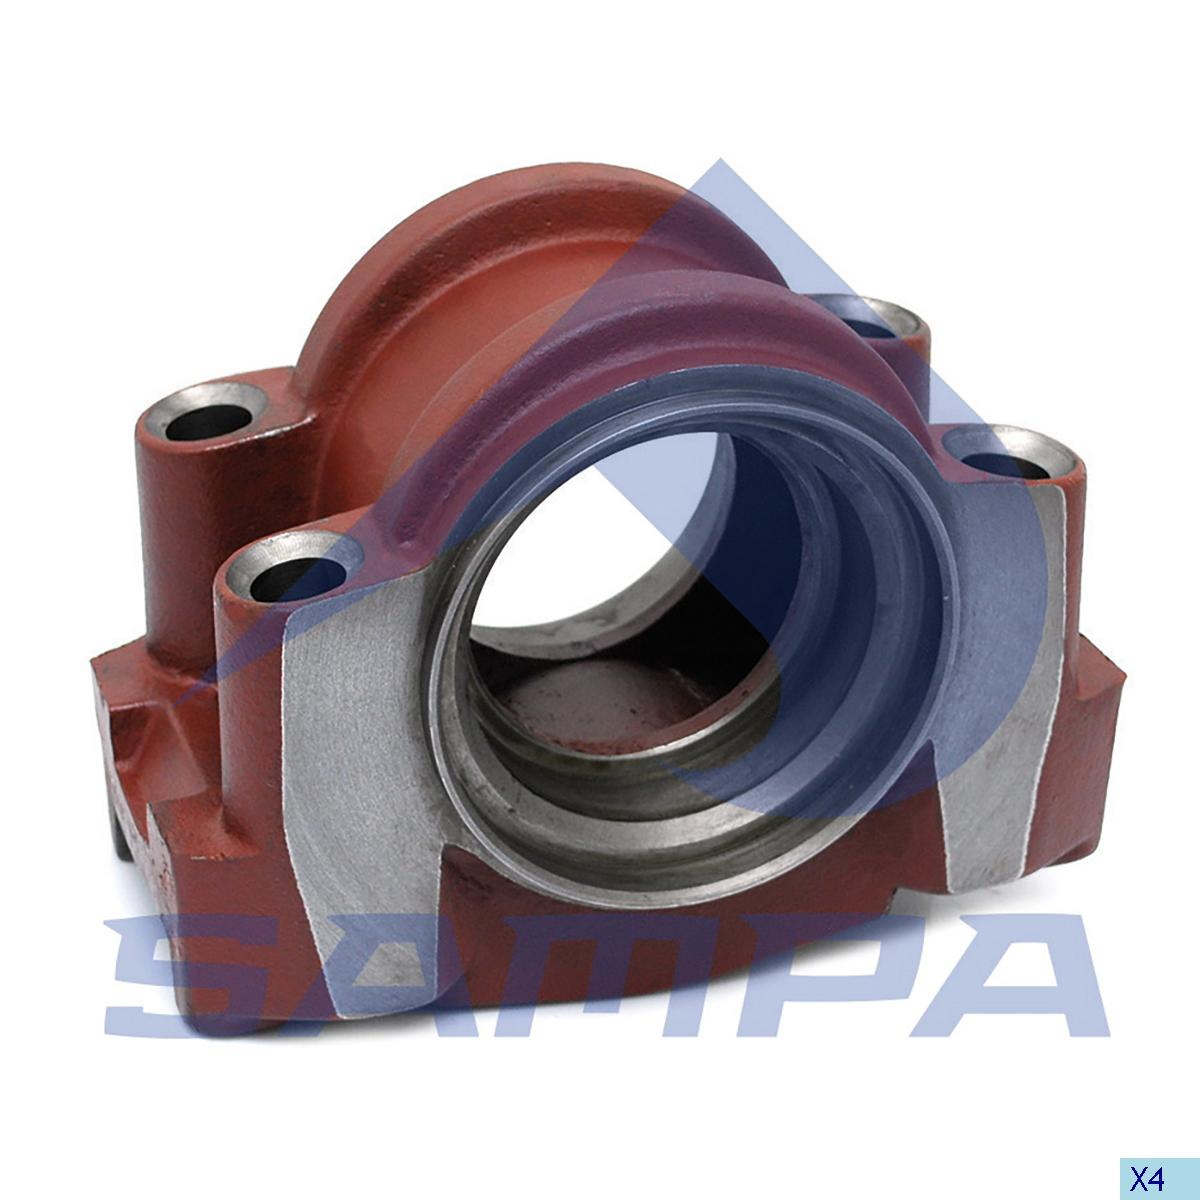 Bogie Bearing, Man, Suspension